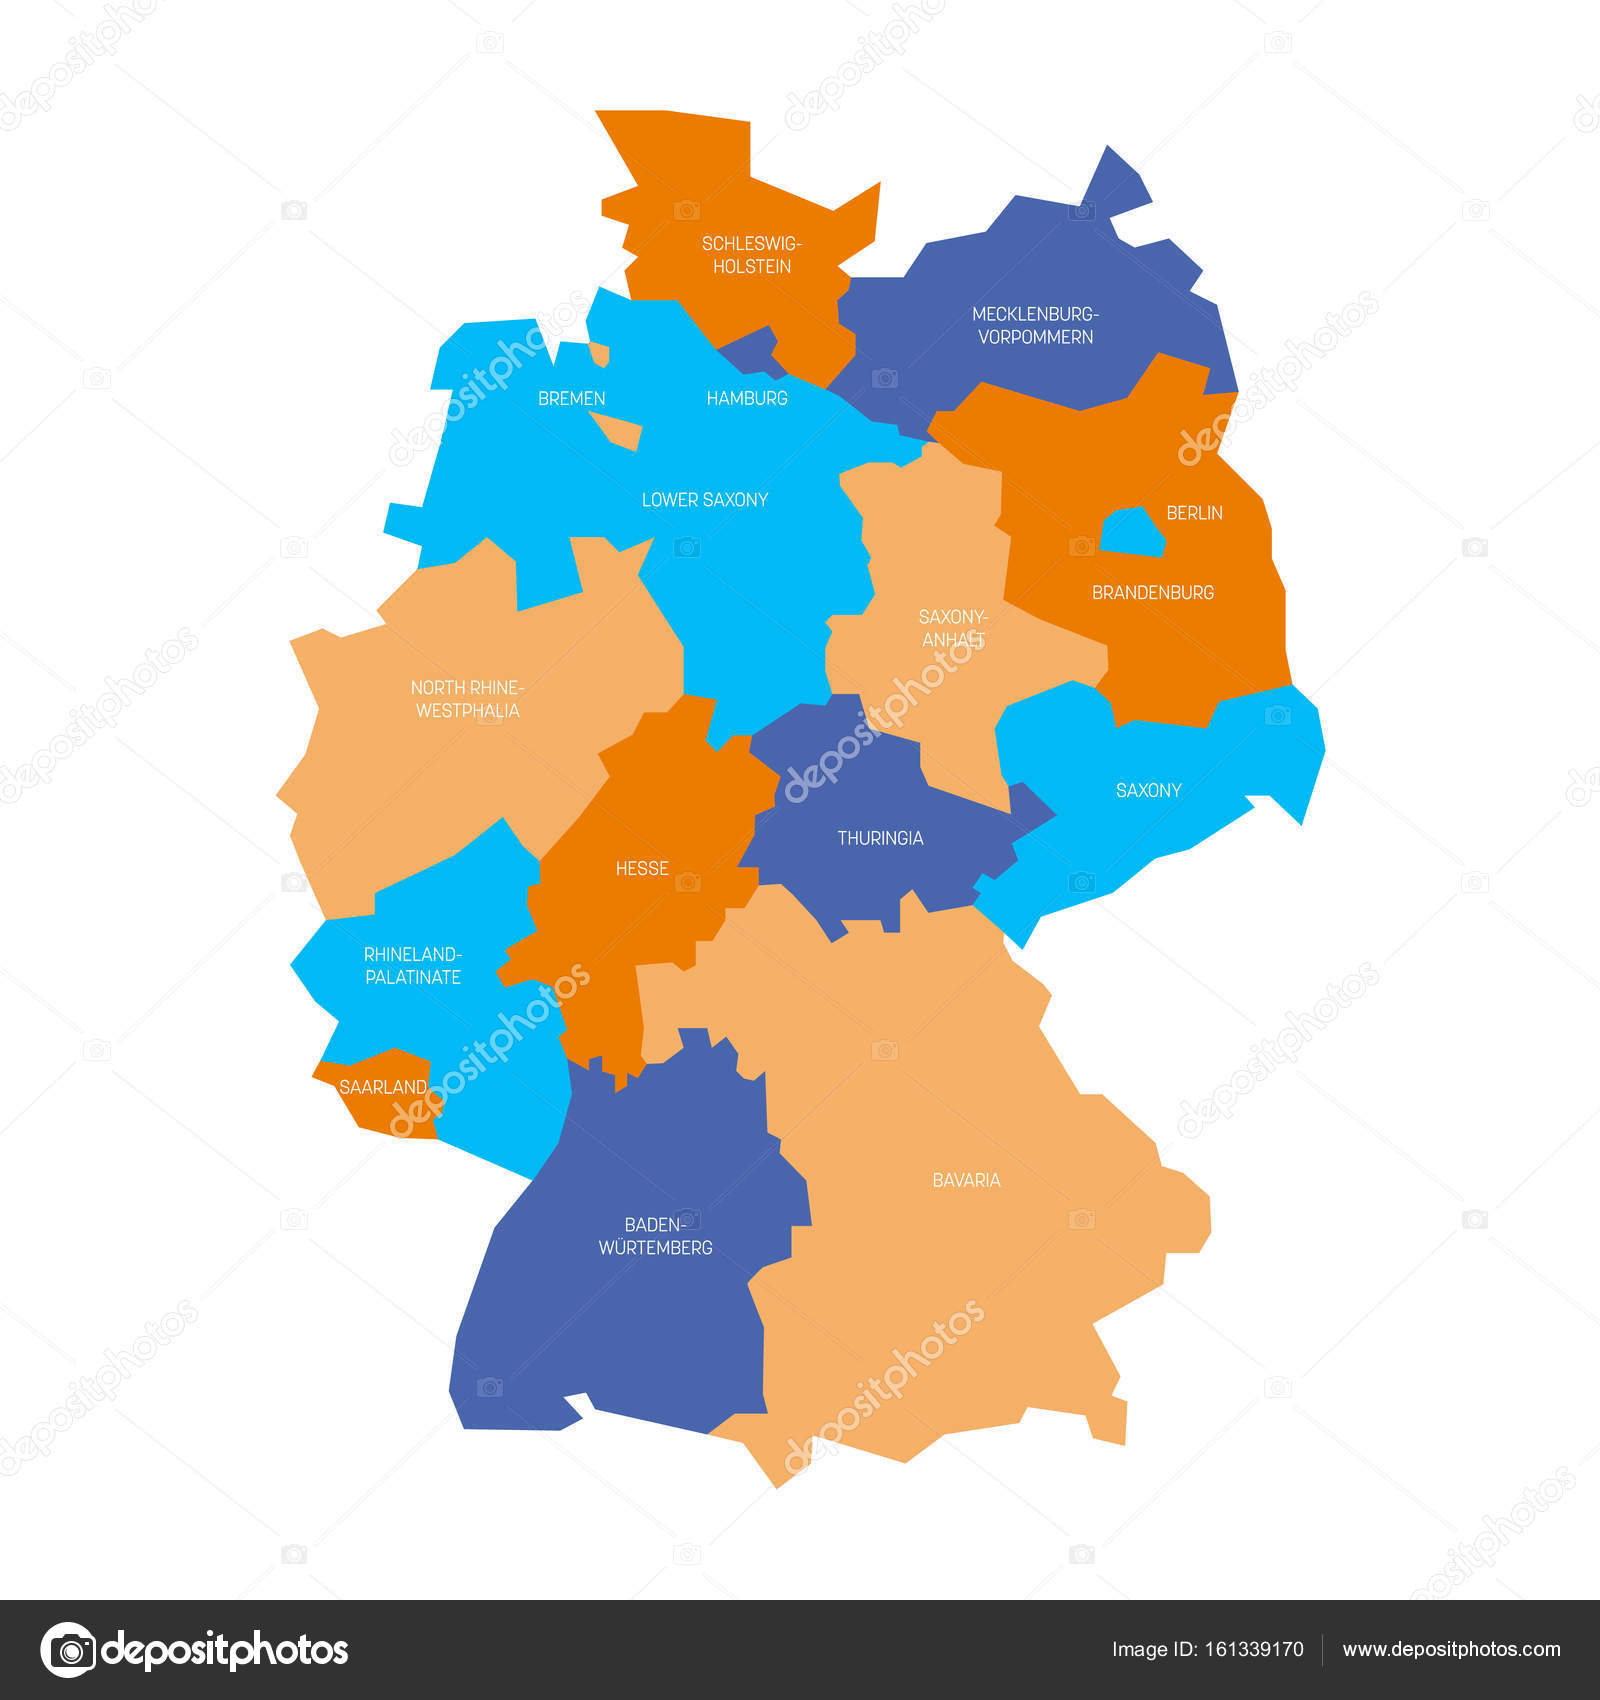 Simple Map Of Germany.Map Of Germany Devided To 13 Federal States And 3 City States